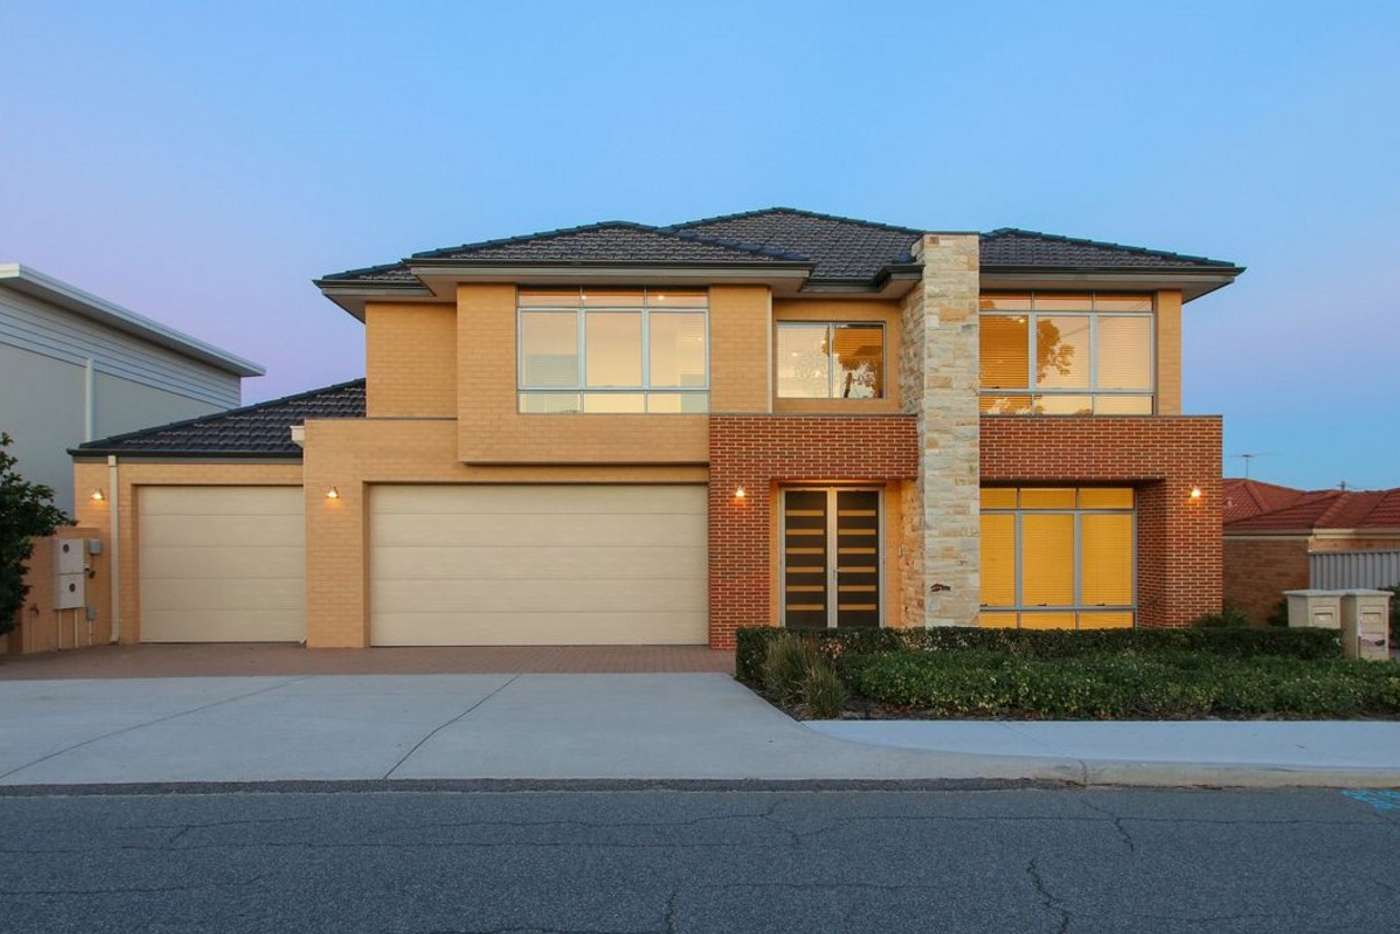 Fifth view of Homely house listing, 16 Hewton Street, Morley WA 6062